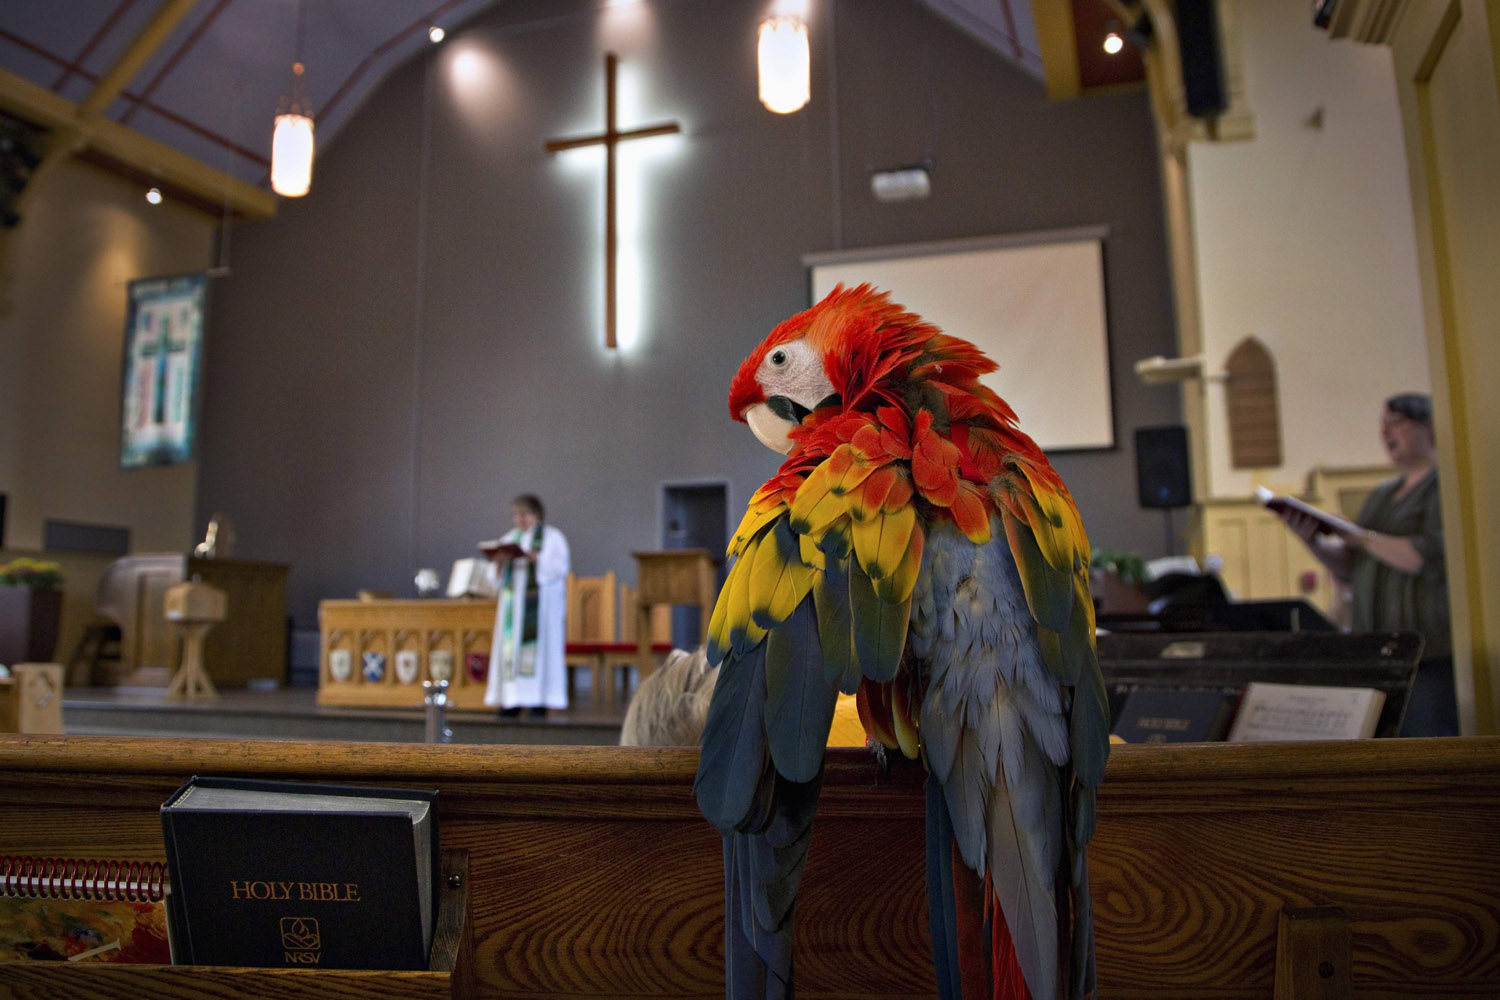 Oct. 6, 2013. A Scarlet Macaw named Princess Tiffany is perched on a pew in St. Andrew's United Church in North Vancouver.